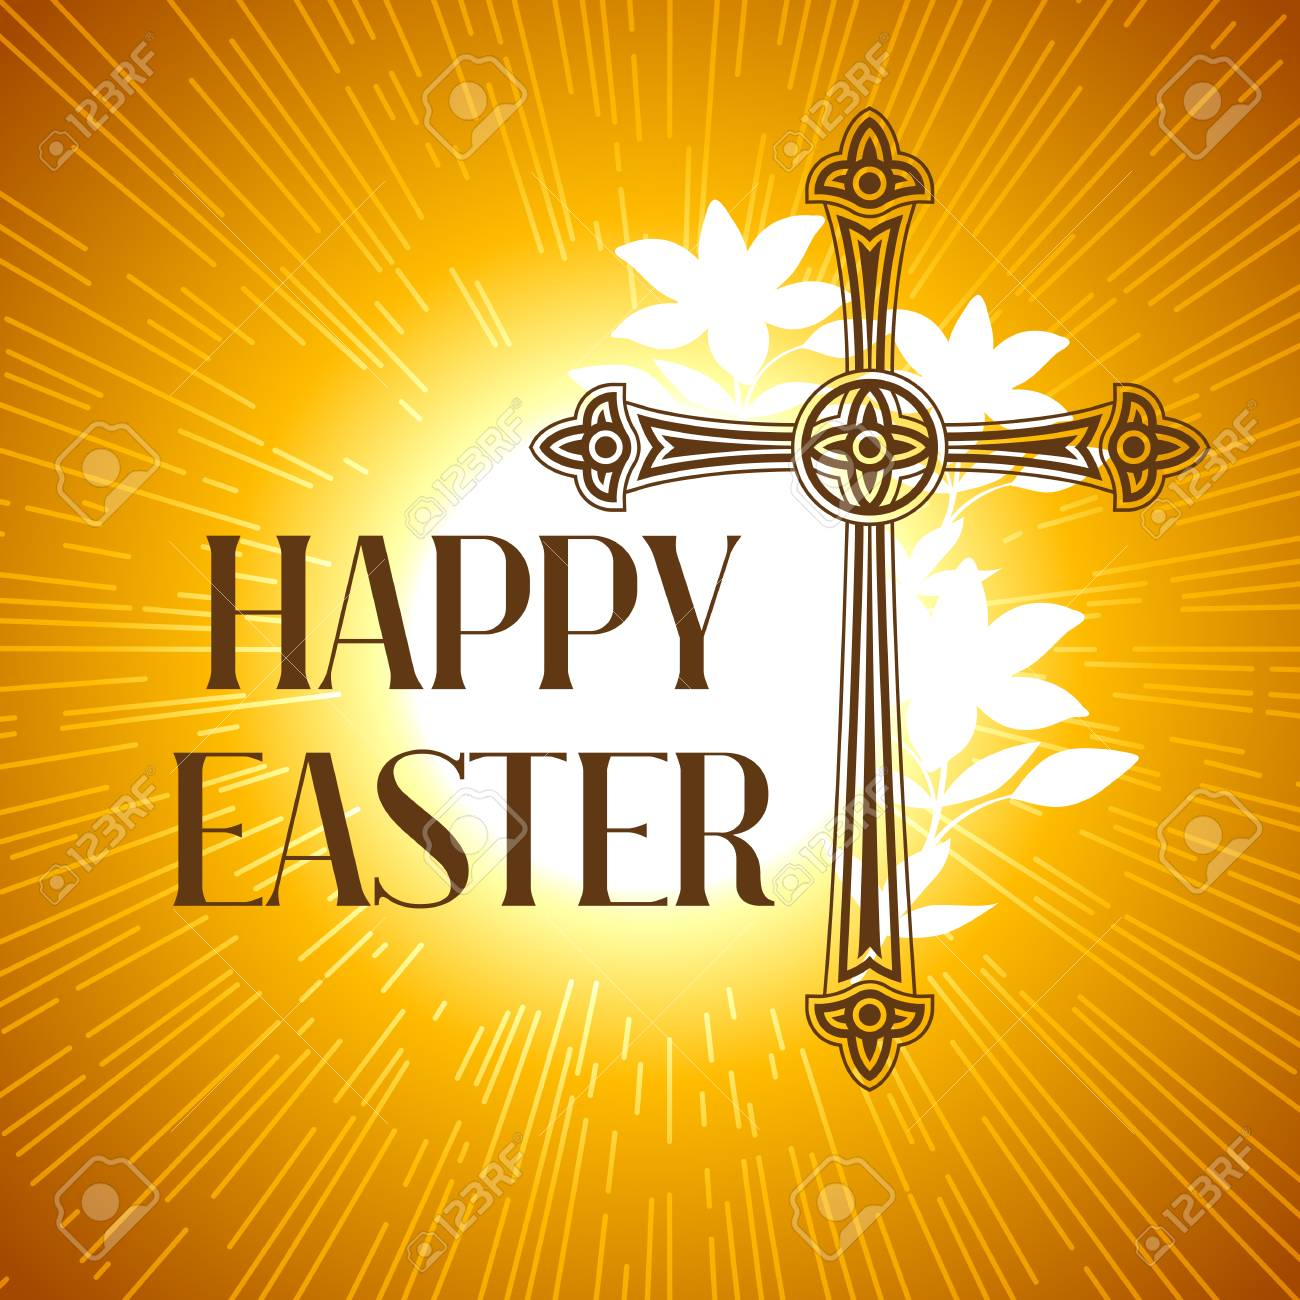 Silhouette Of Ornate Cross Happy Easter Concept Illustration